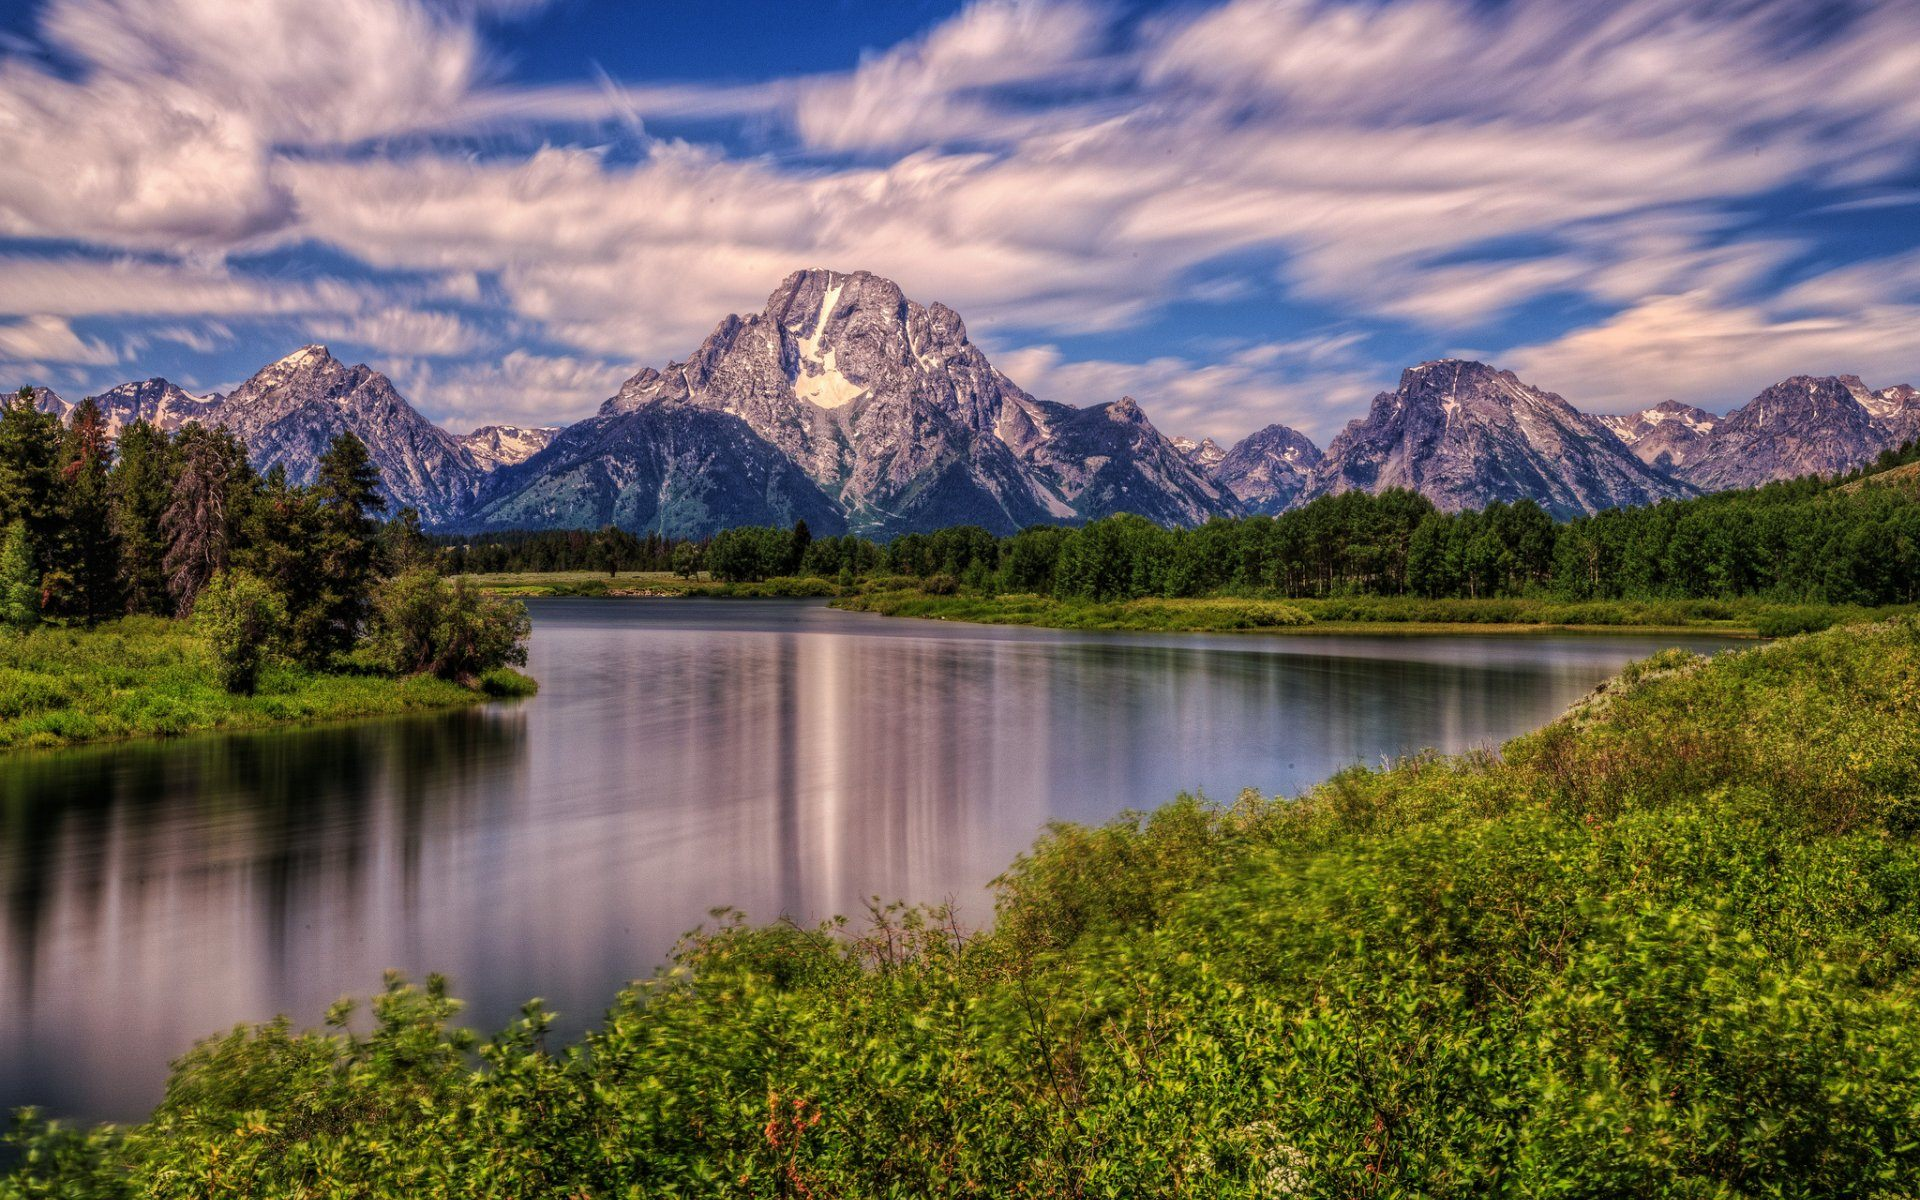 Mountain Landscape Wallpaper Hd Wyoming Usa  Wallpapers13com